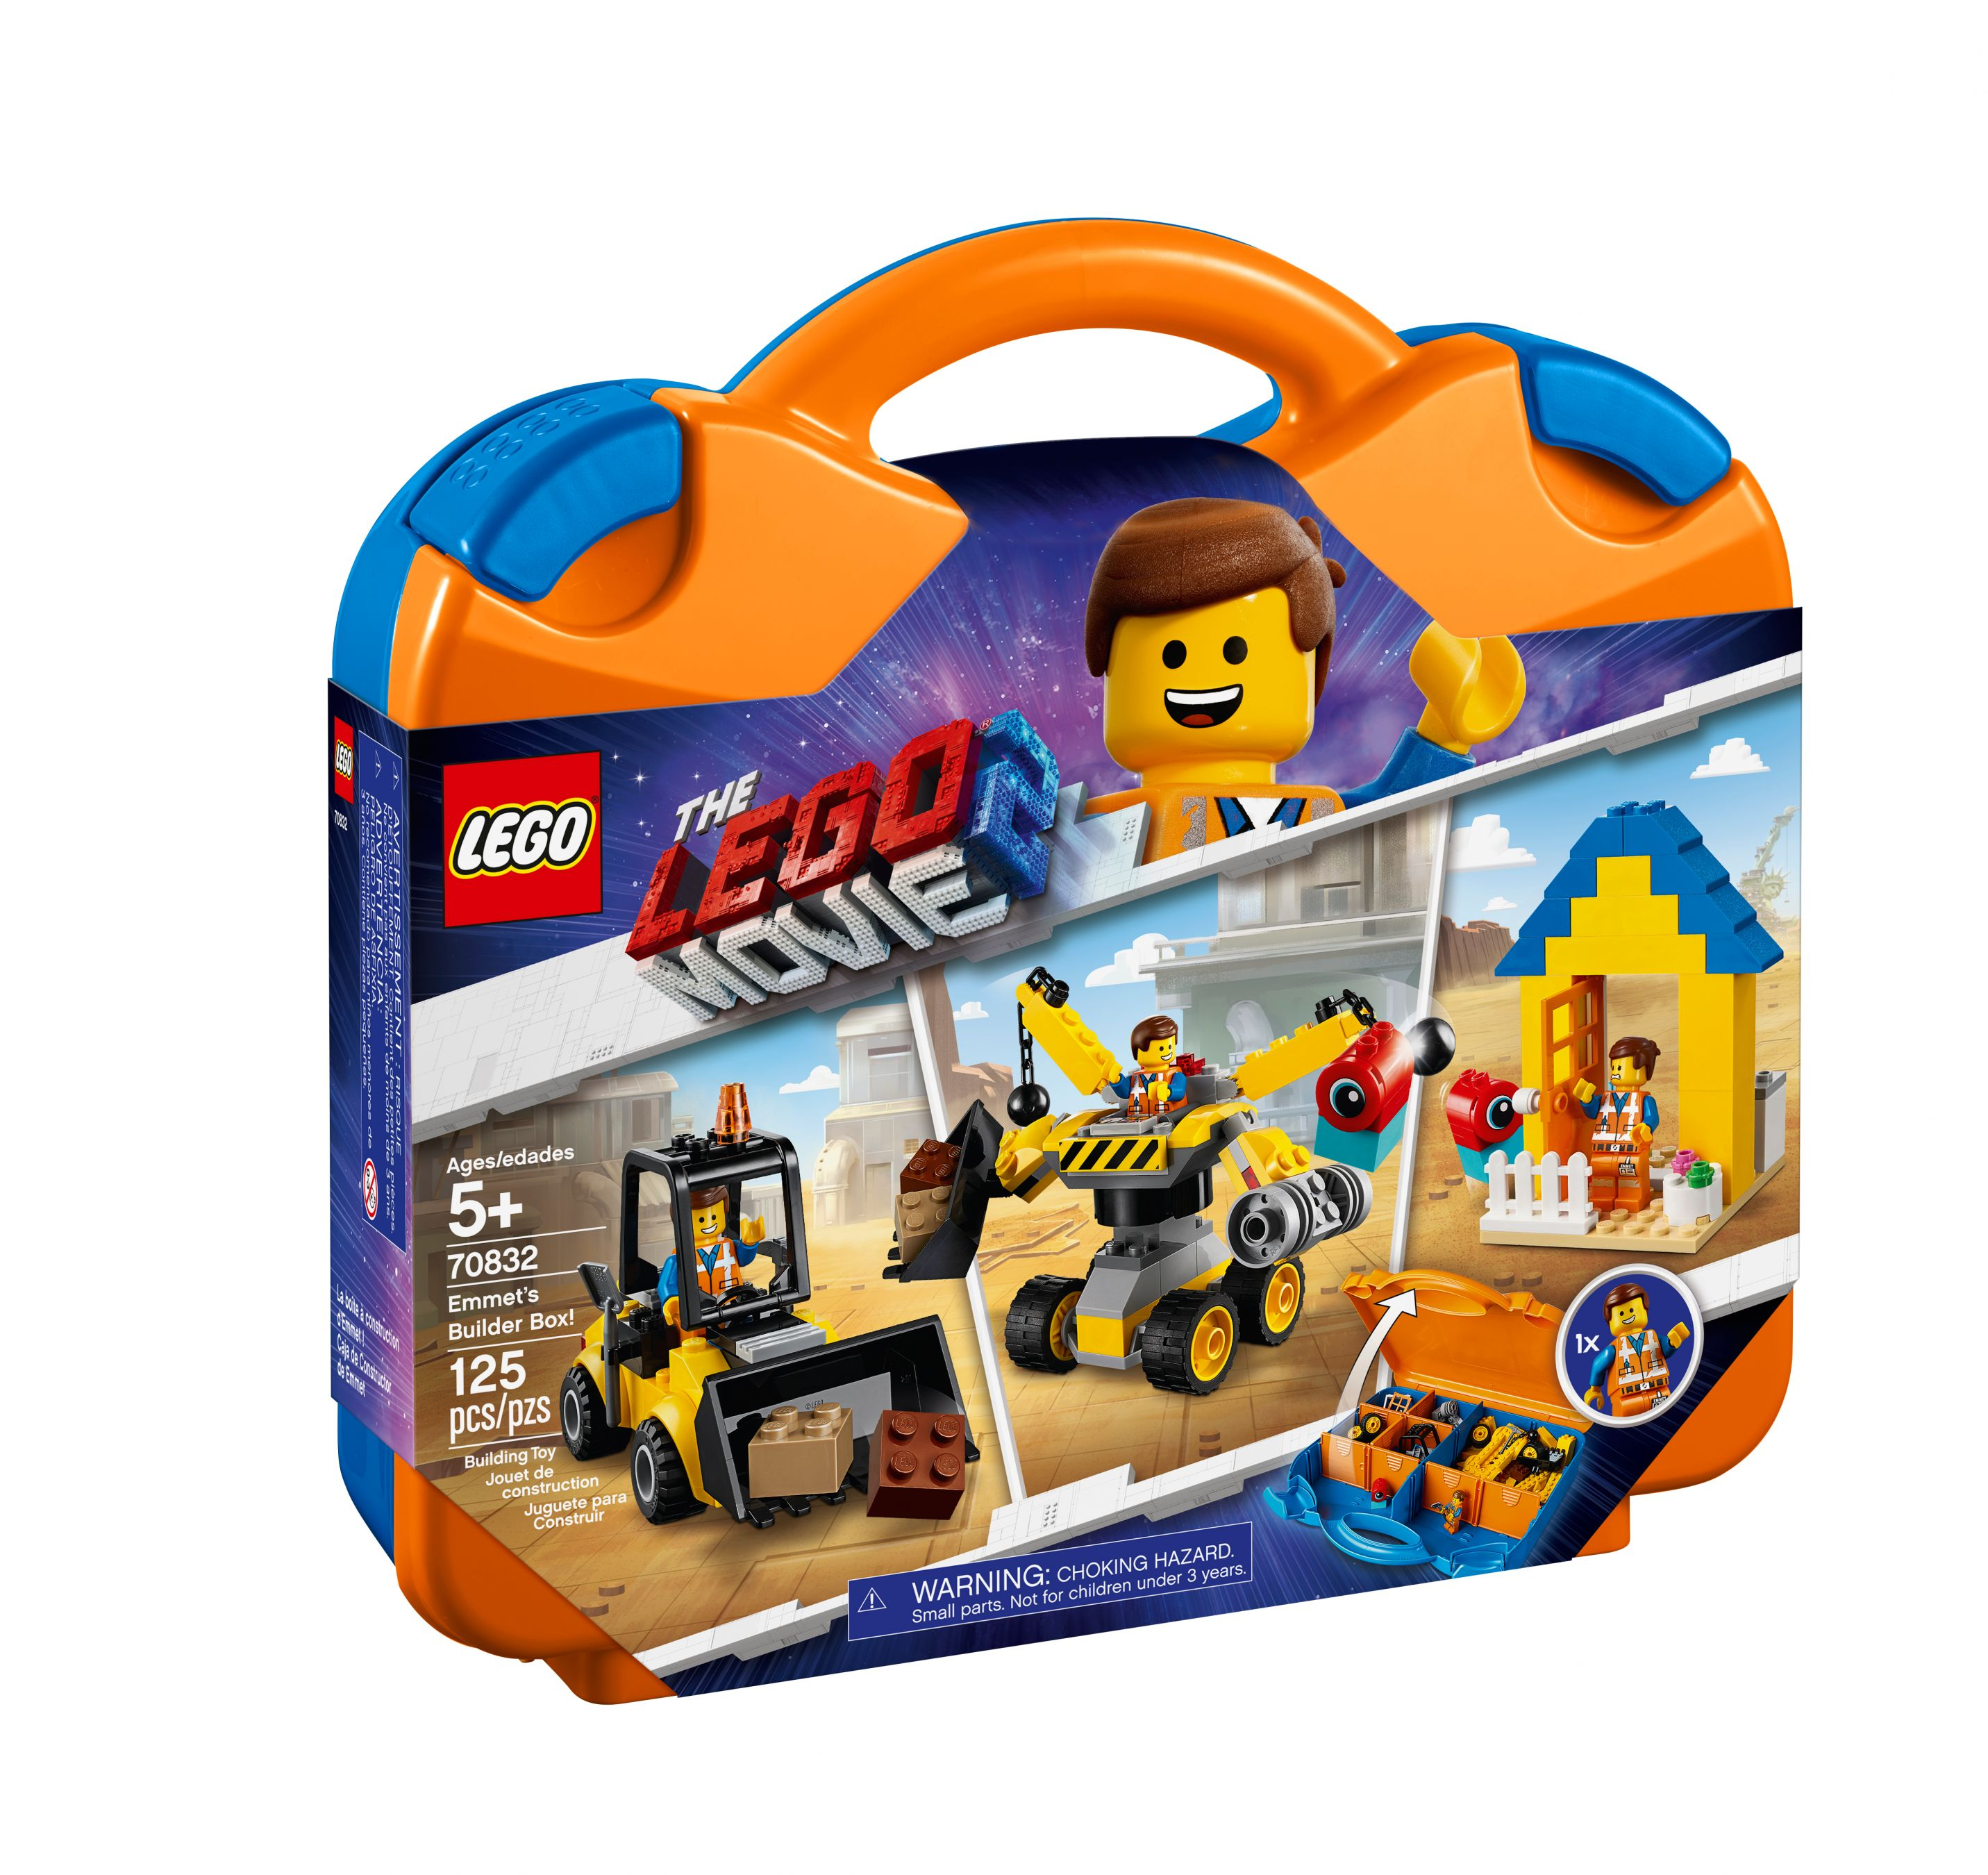 LEGO The LEGO Movie 2 70832 Emmets Baukoffer! LEGO_70832_alt1.jpg